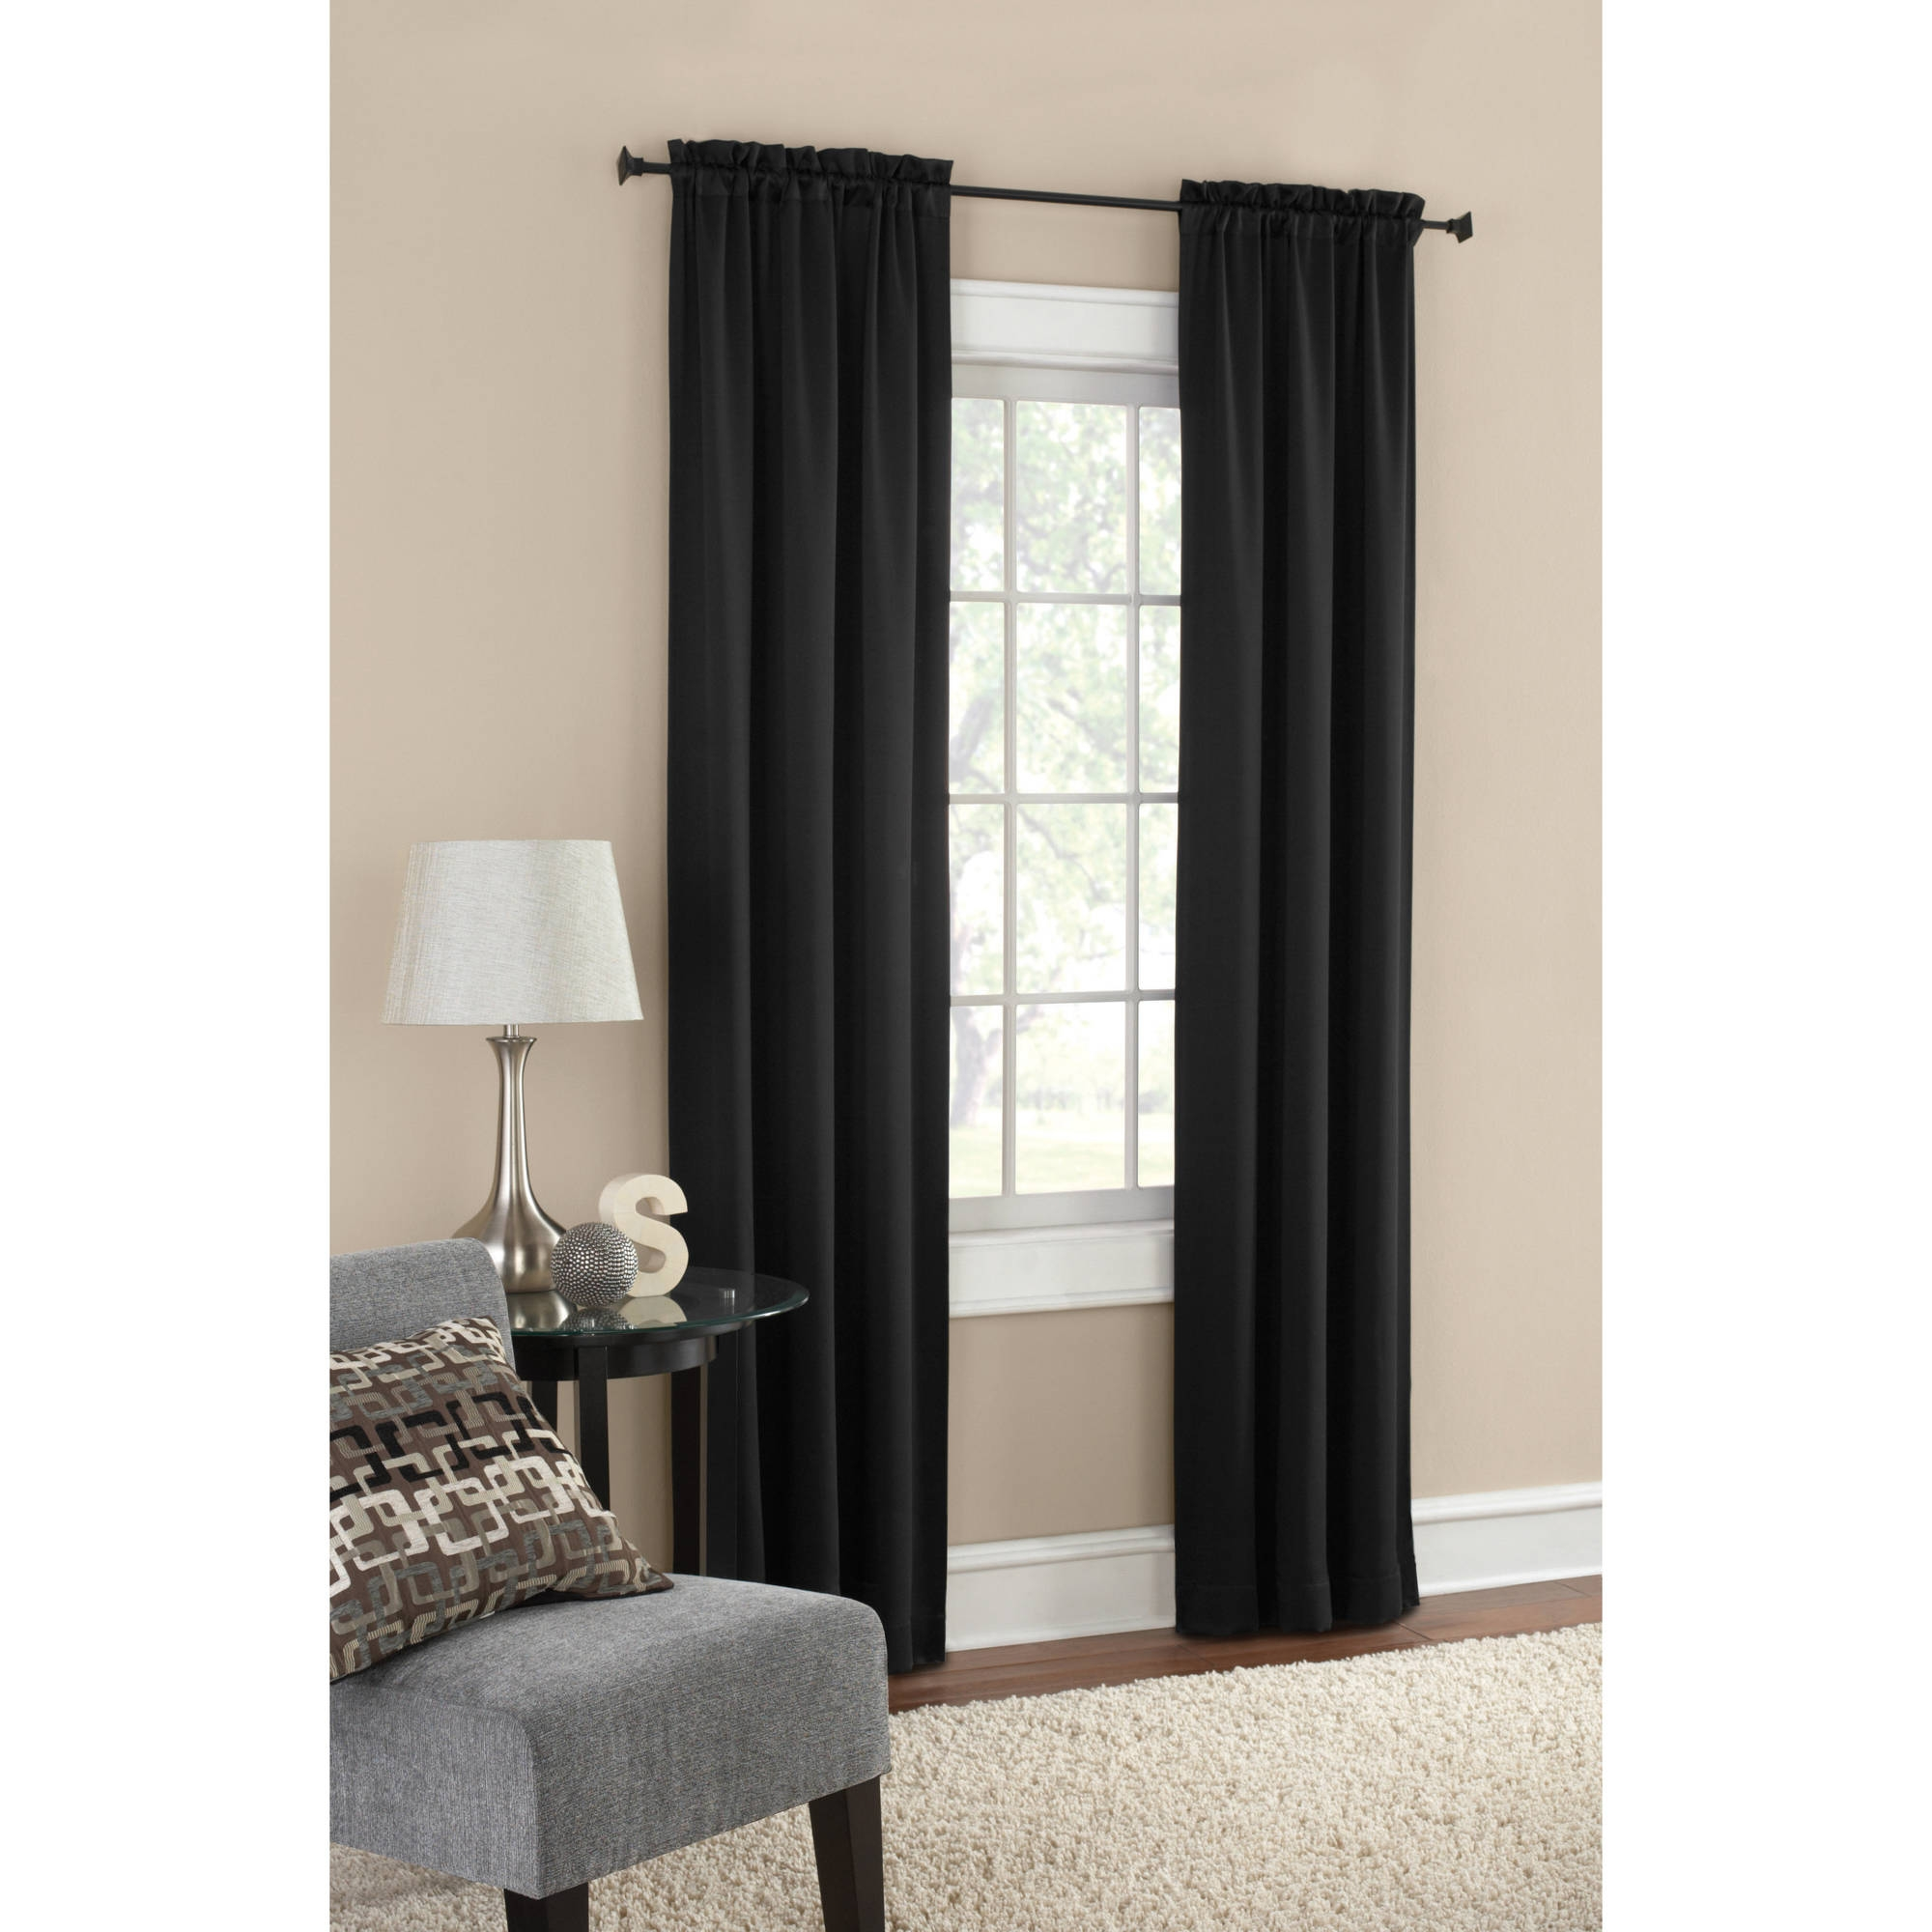 Walmart Thermal Curtains 15 Photos Thermal Lined Blackout Curtains Curtain Ideas